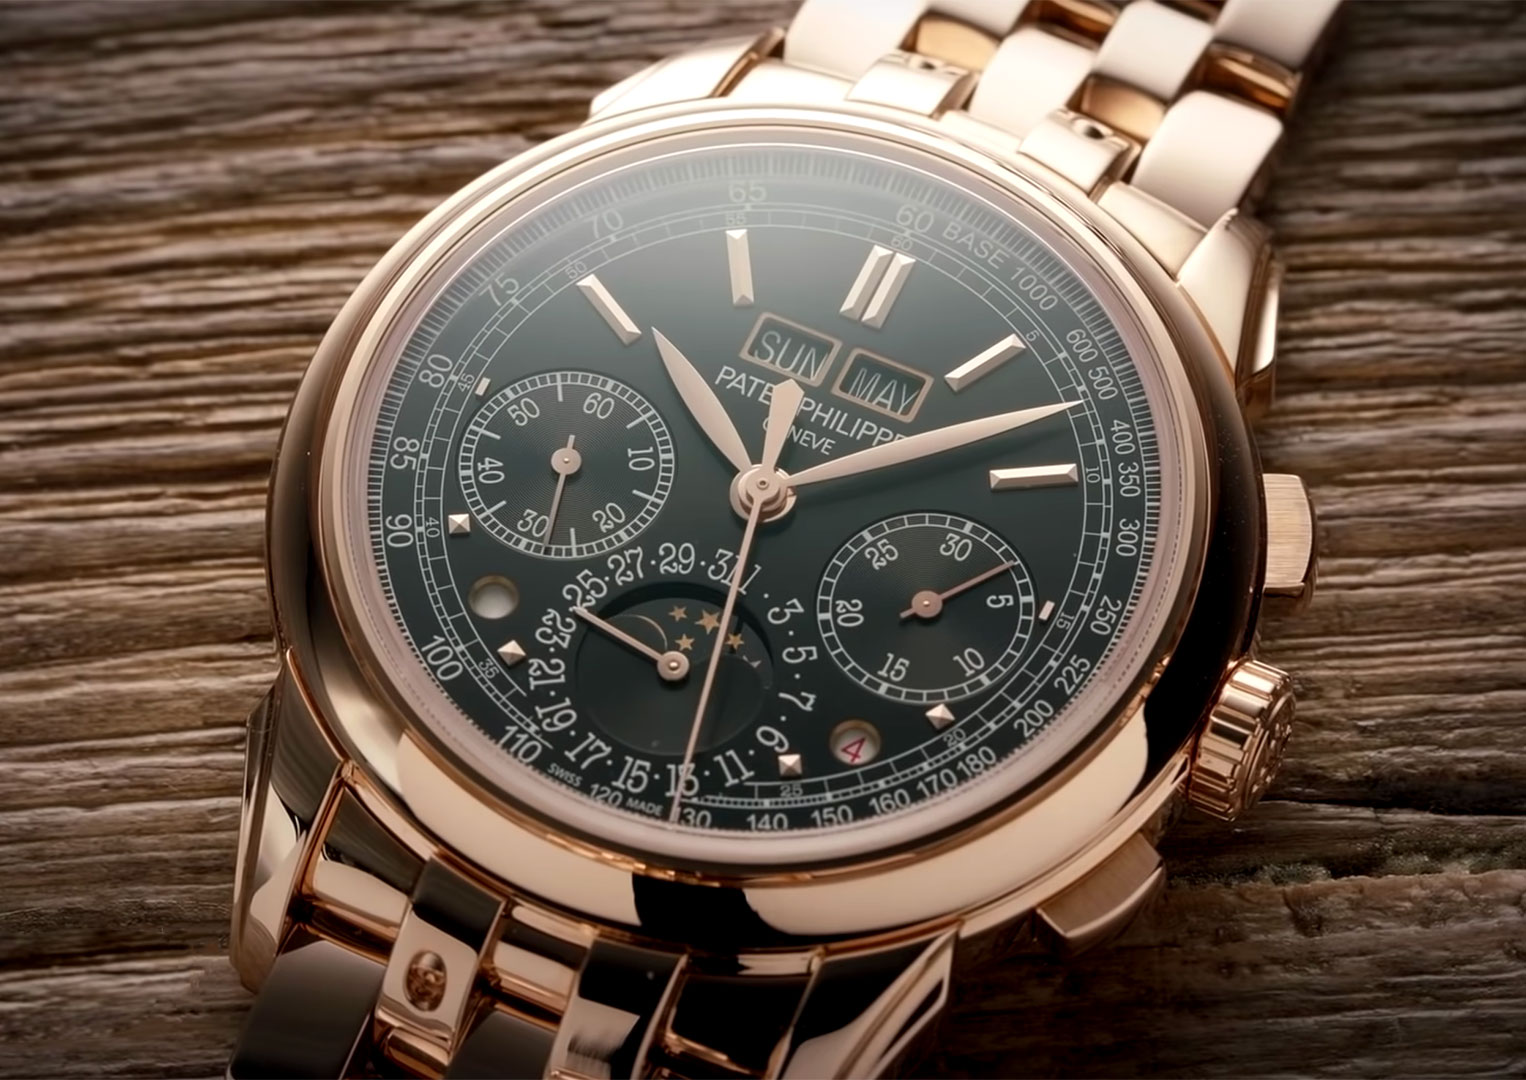 Patek Philippe is a family run/owned business. The company has been owned by the Stern family since 1932